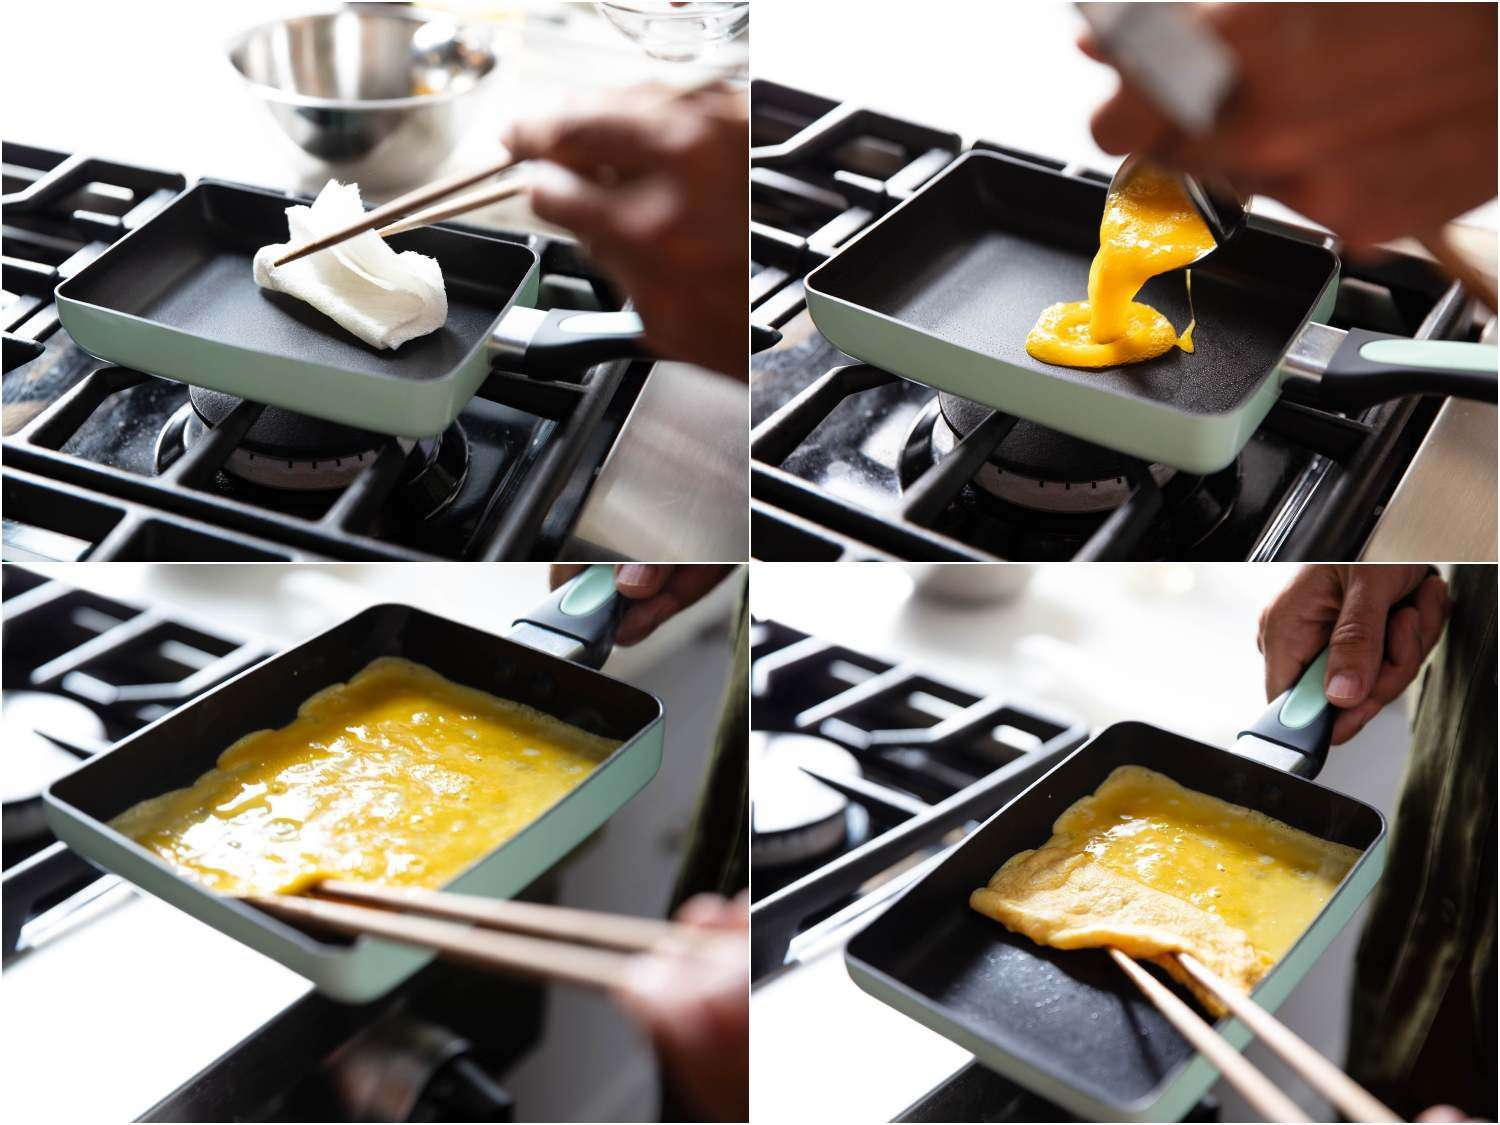 A series of 4 photographs showing the first steps for making tamagoyaki: lightly greasing the preheated pan with an oiled paper towel; adding just enough of the raw egg mixture to make a thin layer covering the entire bottom of the pan; then rolling that layer up toward the handle.